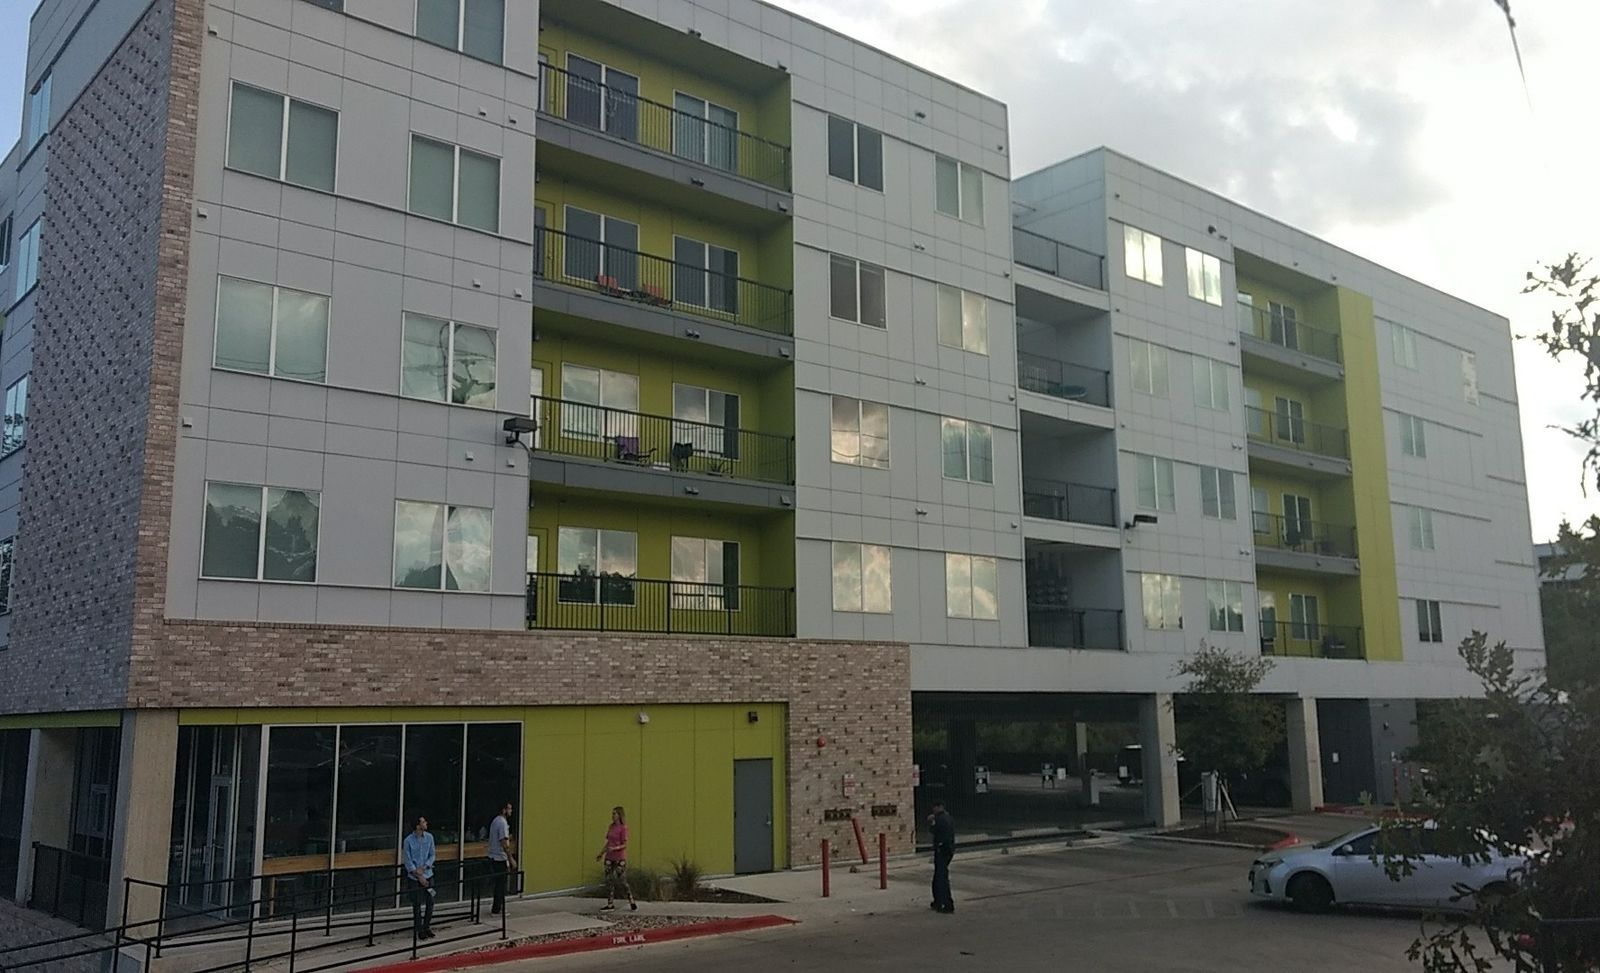 The San Marcos Fire Marshal has issued a mandatory evacuation of an apartment complex Friday. The City of San Marcos said that safety concerns regarding building stability and means of egress prompted the evacuation order of the Vie Lofts at 817 Chestnut Street. (Photo courtesy: City of San Marcos)